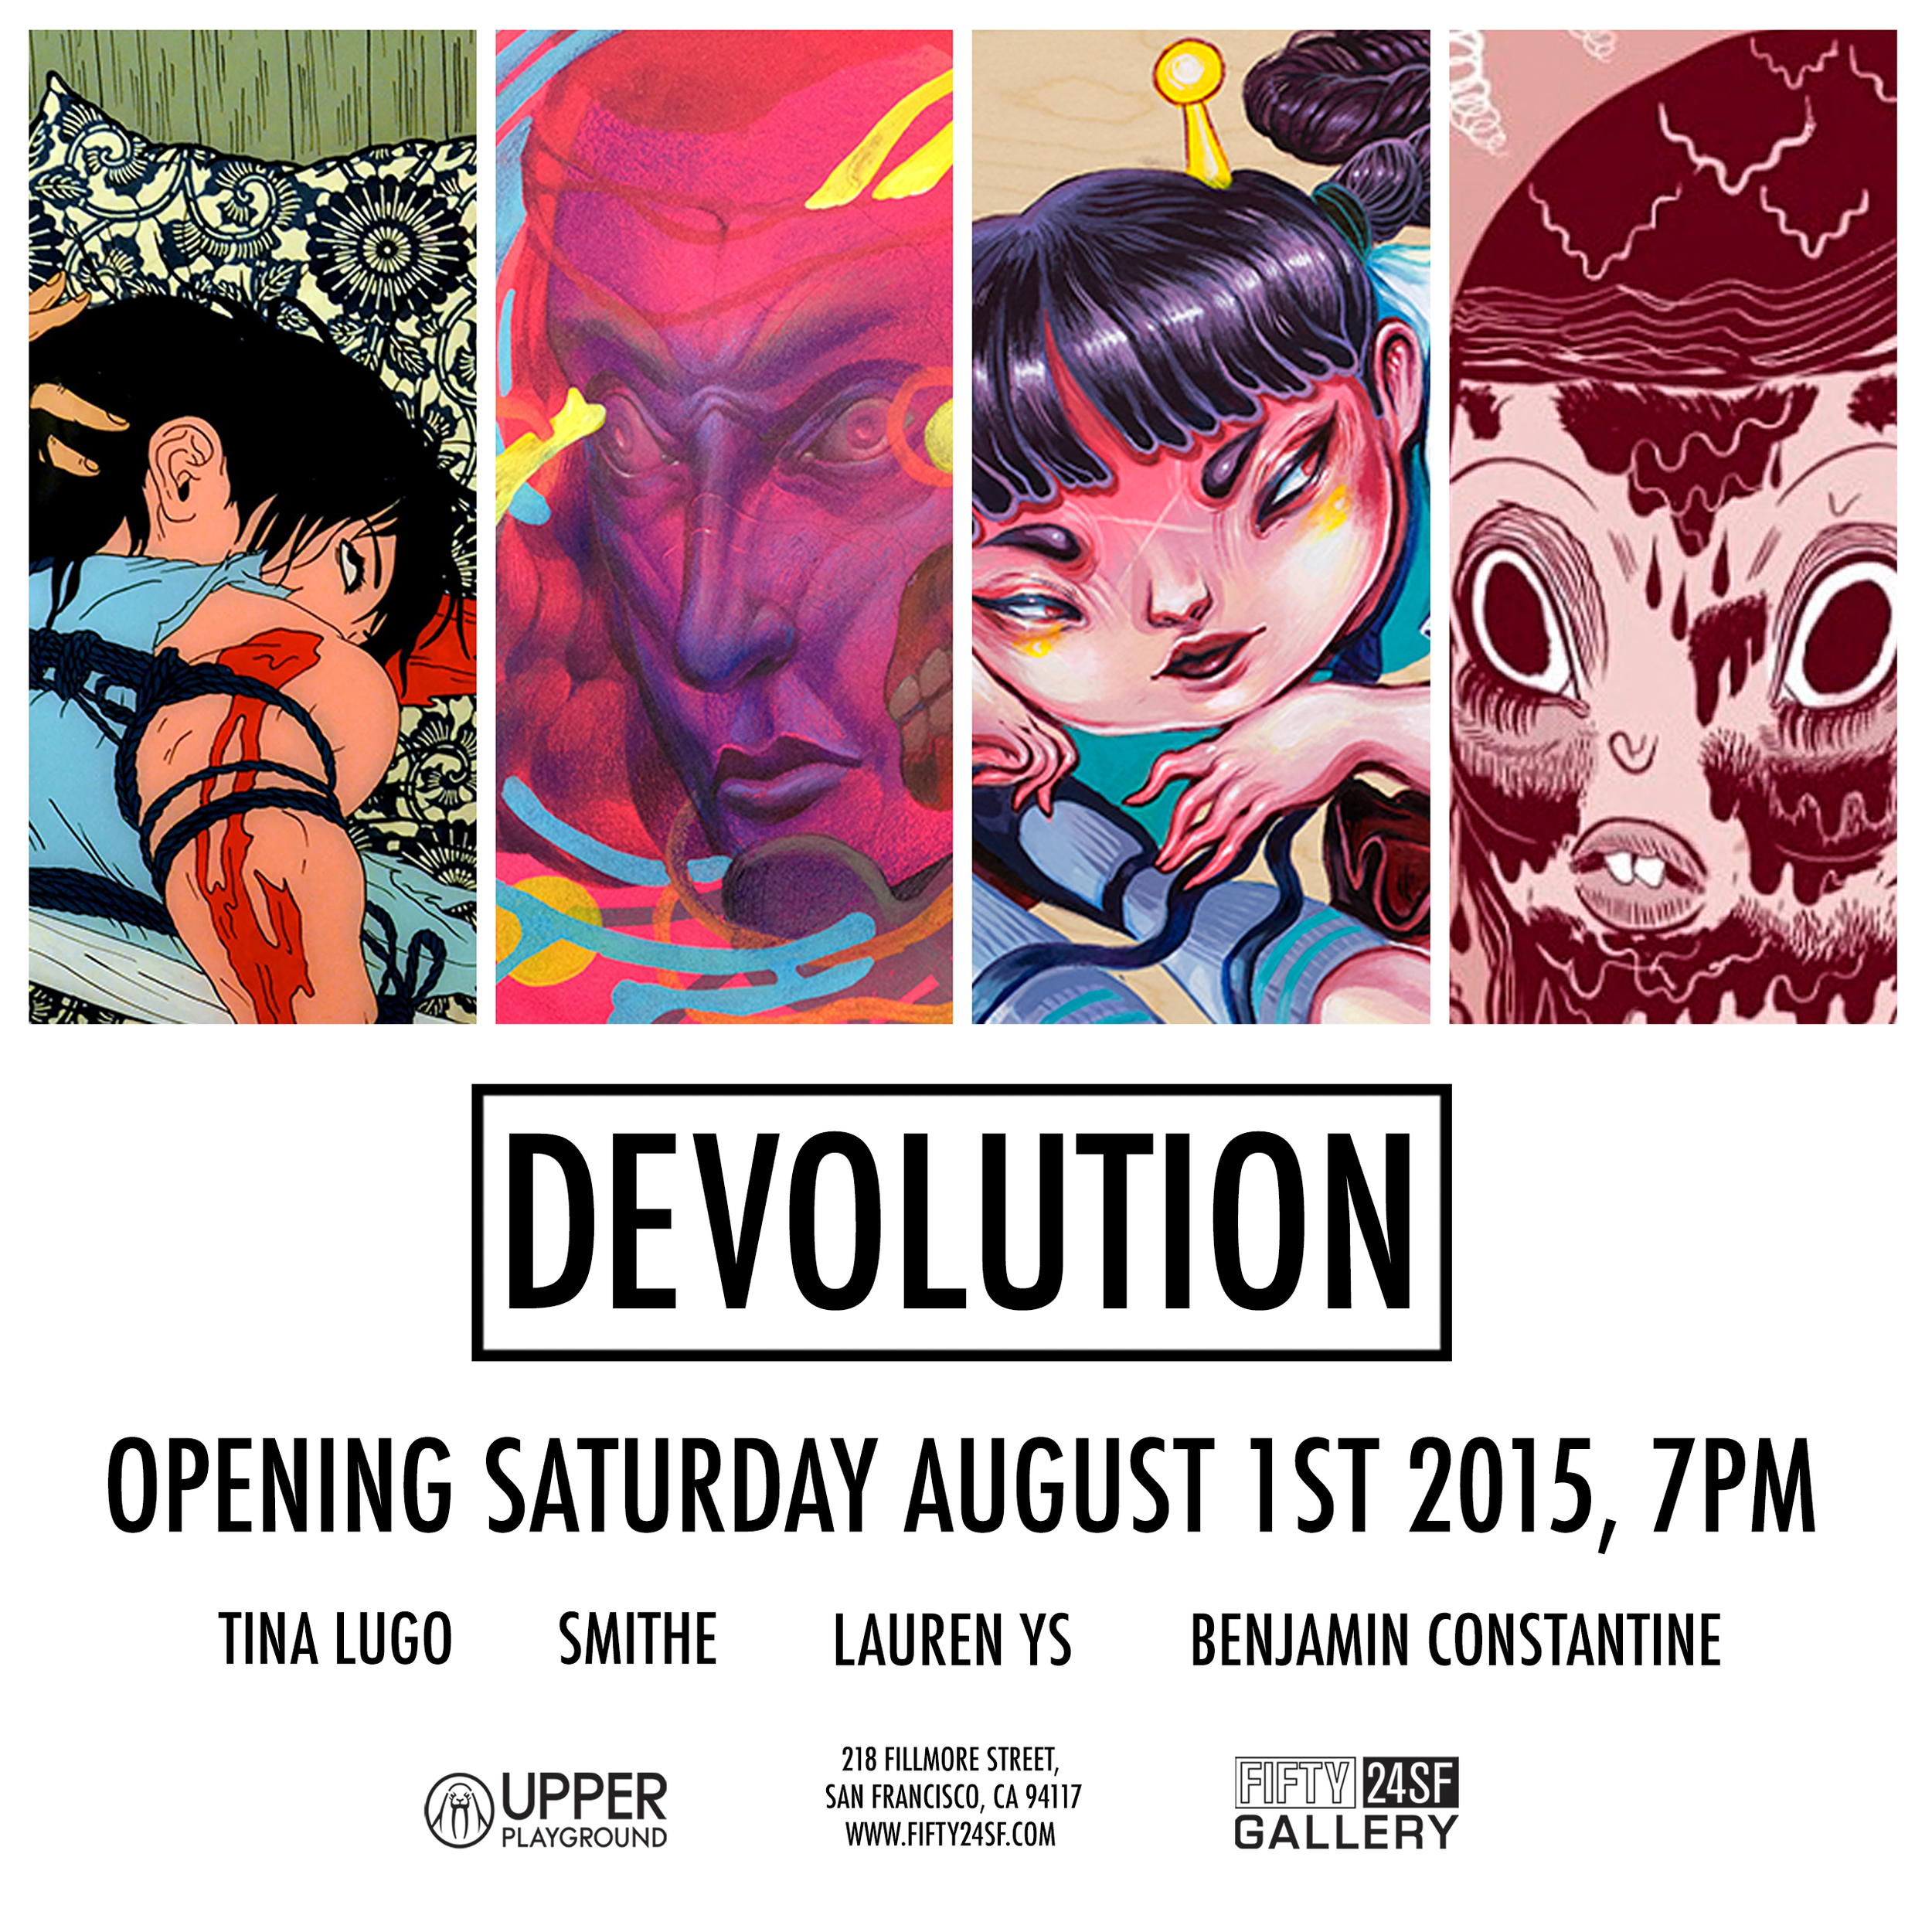 devolution-exhibition-fifty24sf-gallery-001.png